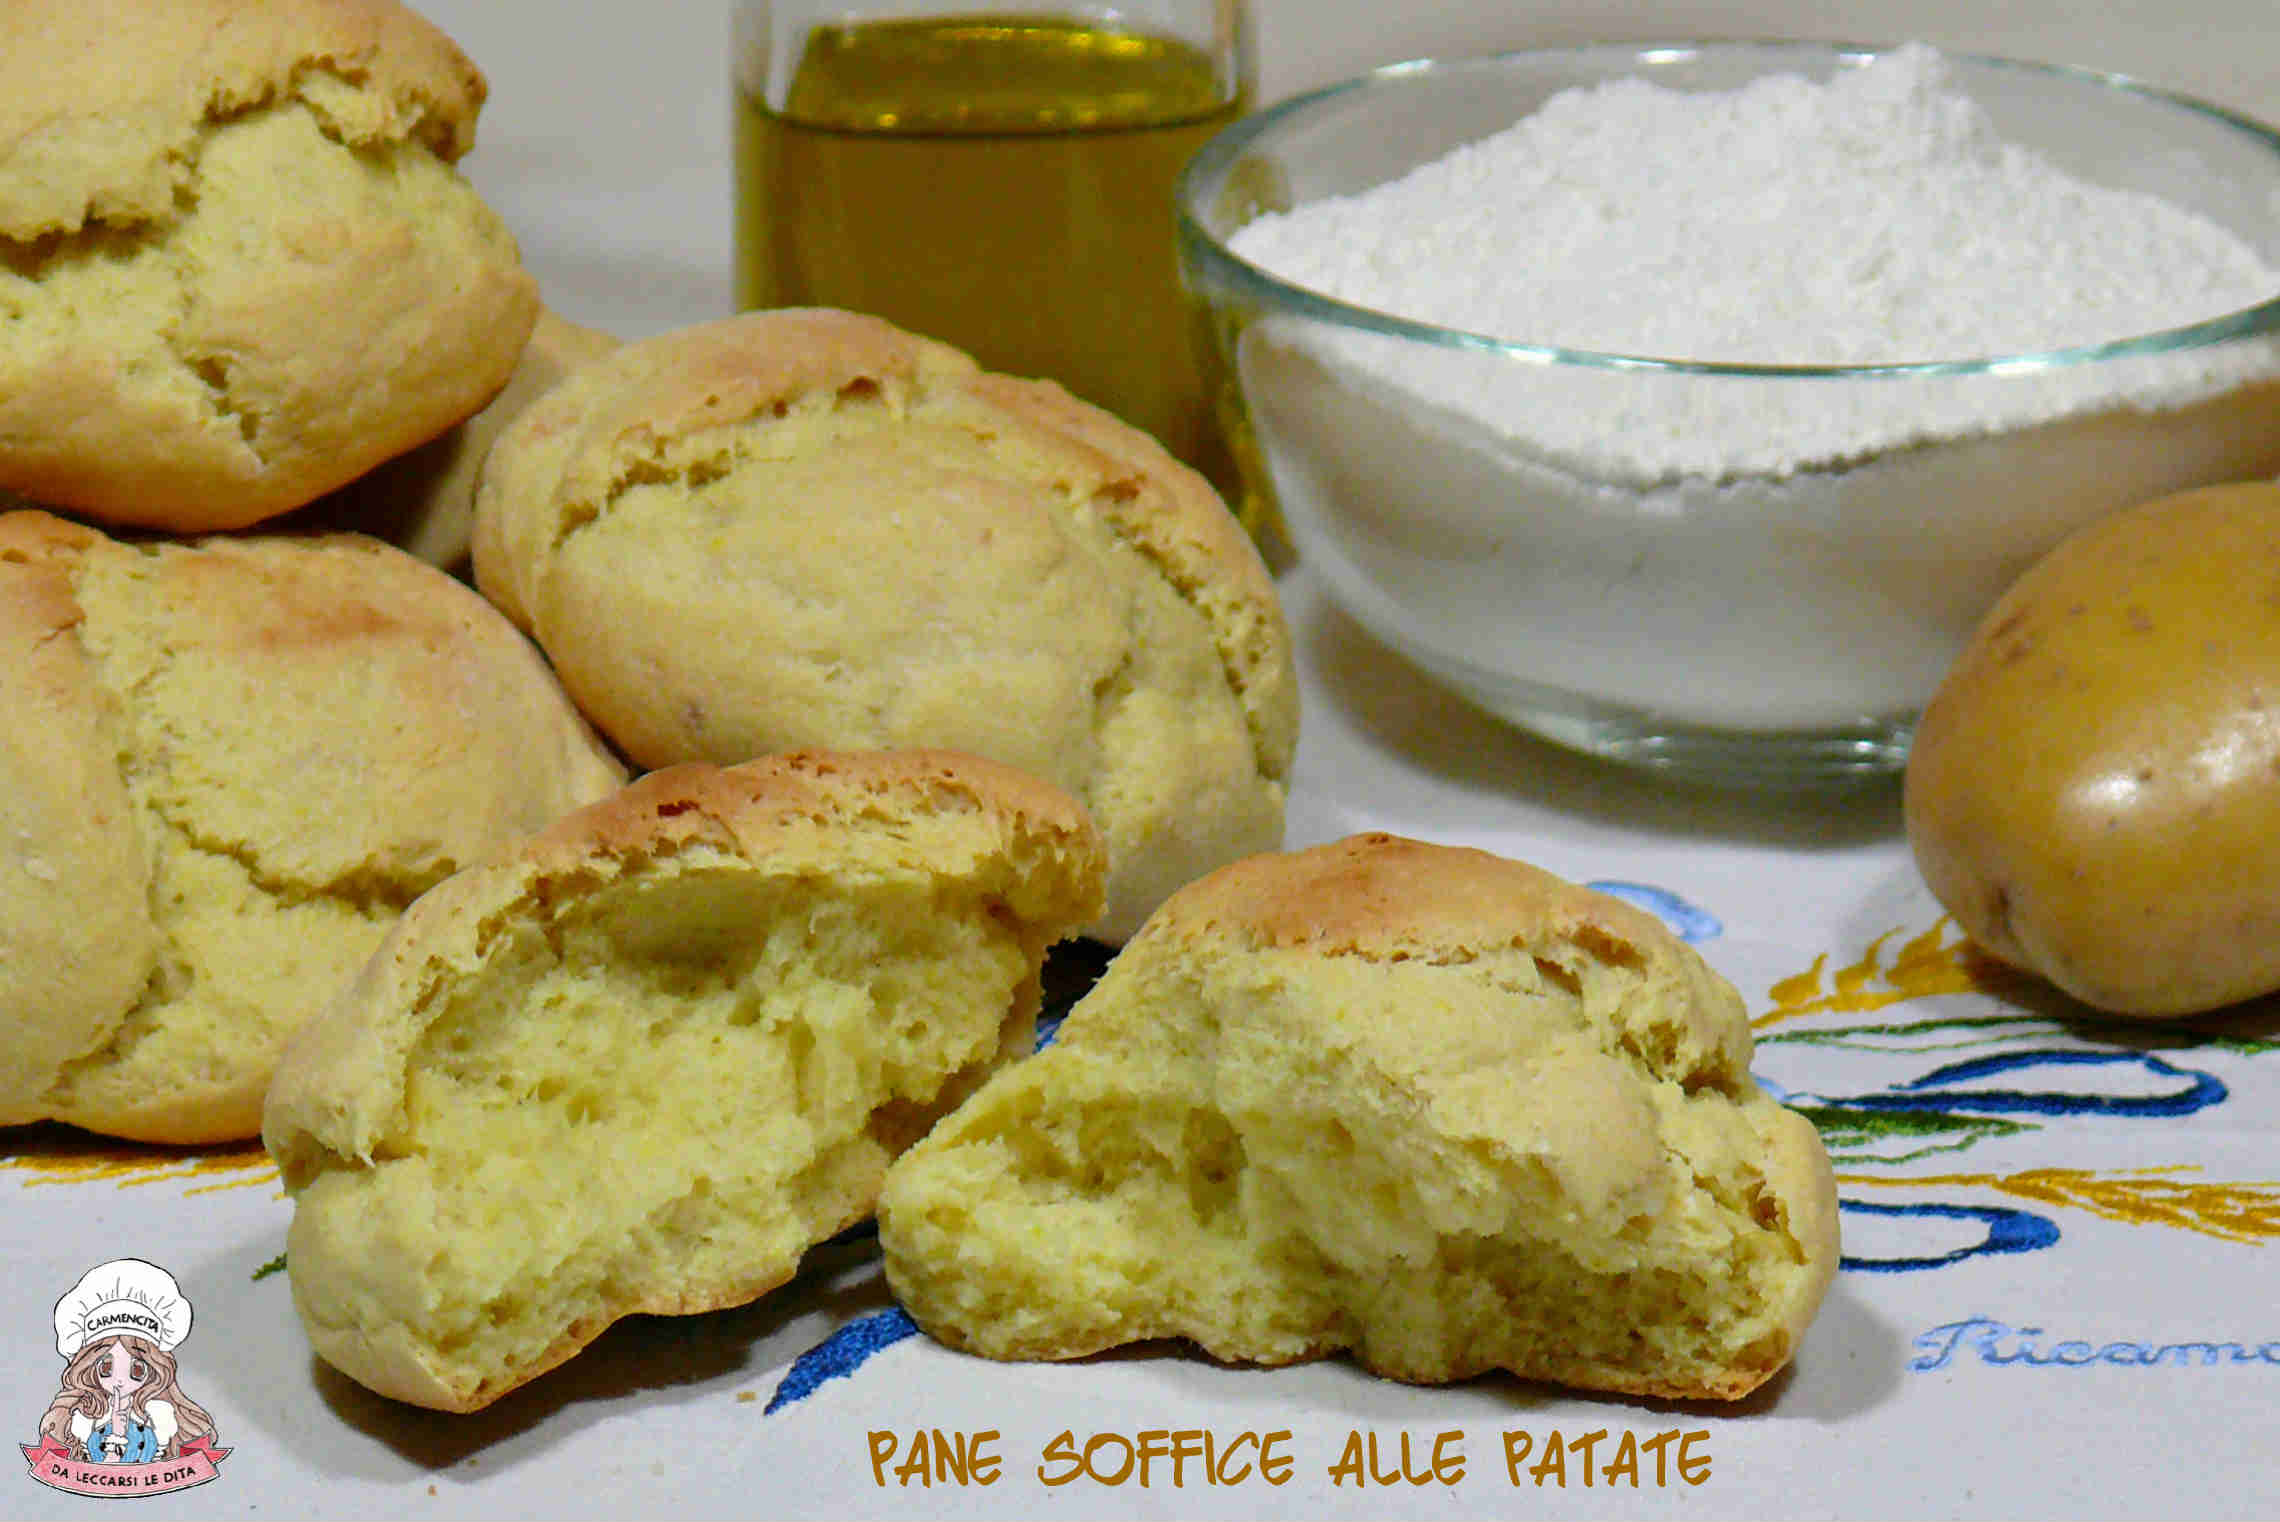 Pane soffice alle patate